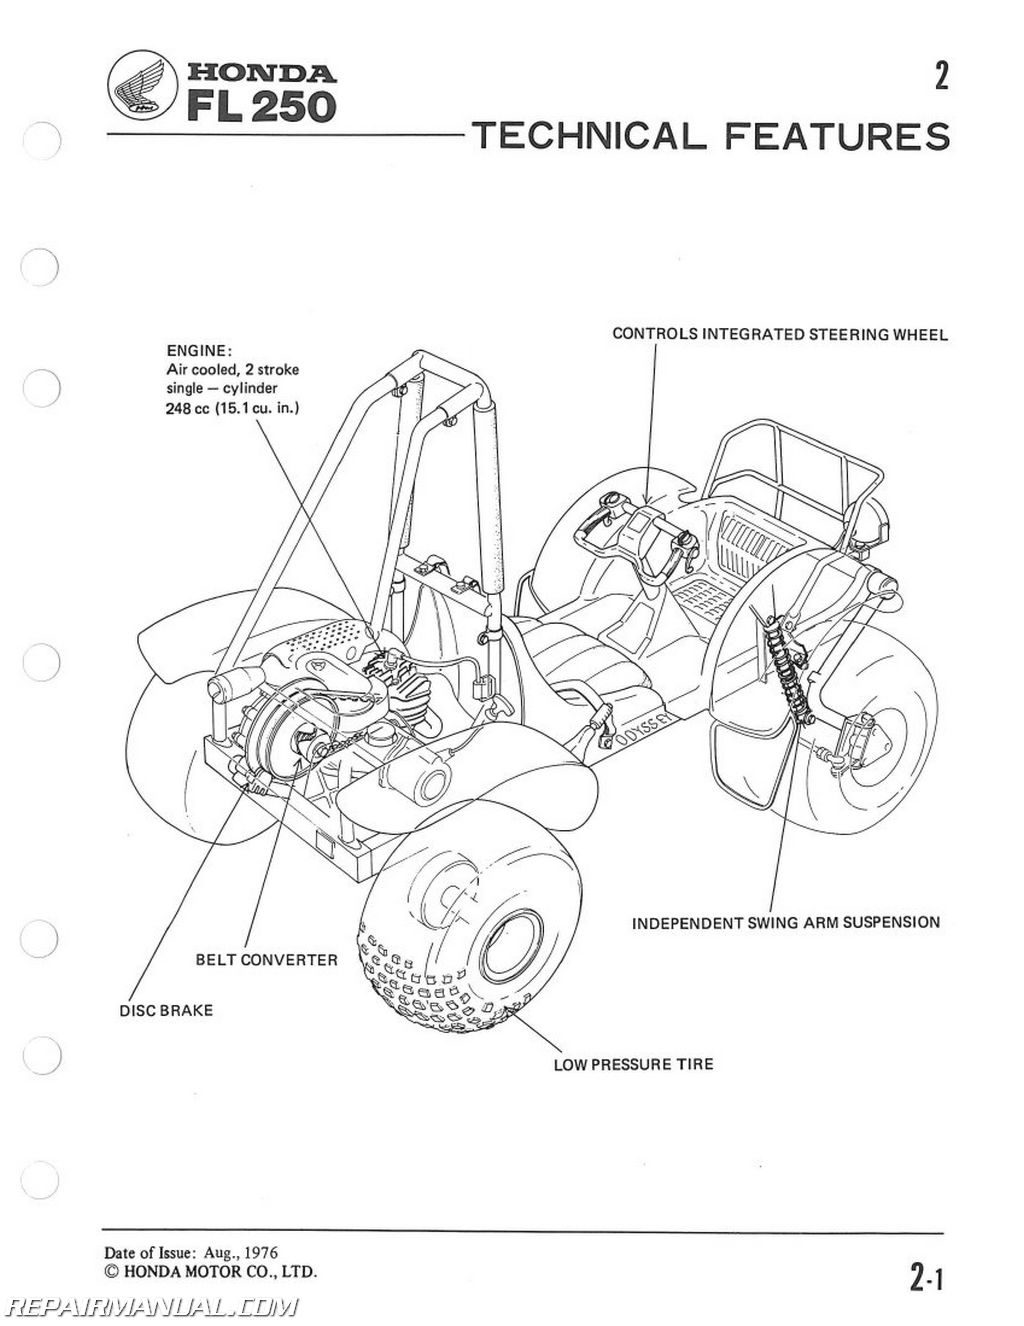 odyssey 250 atv wiring diagram with Honda Fl250 Odyssey Wiring Diagram on 1984 Honda Fl250 Odyssey Wiring Diagram further Diagram Honda 300ex Wiring Trx 200 in addition Honda 400ex Wiring Diagram as well F  0701 together with Honda Cb750 Sohc Engine Diagram.